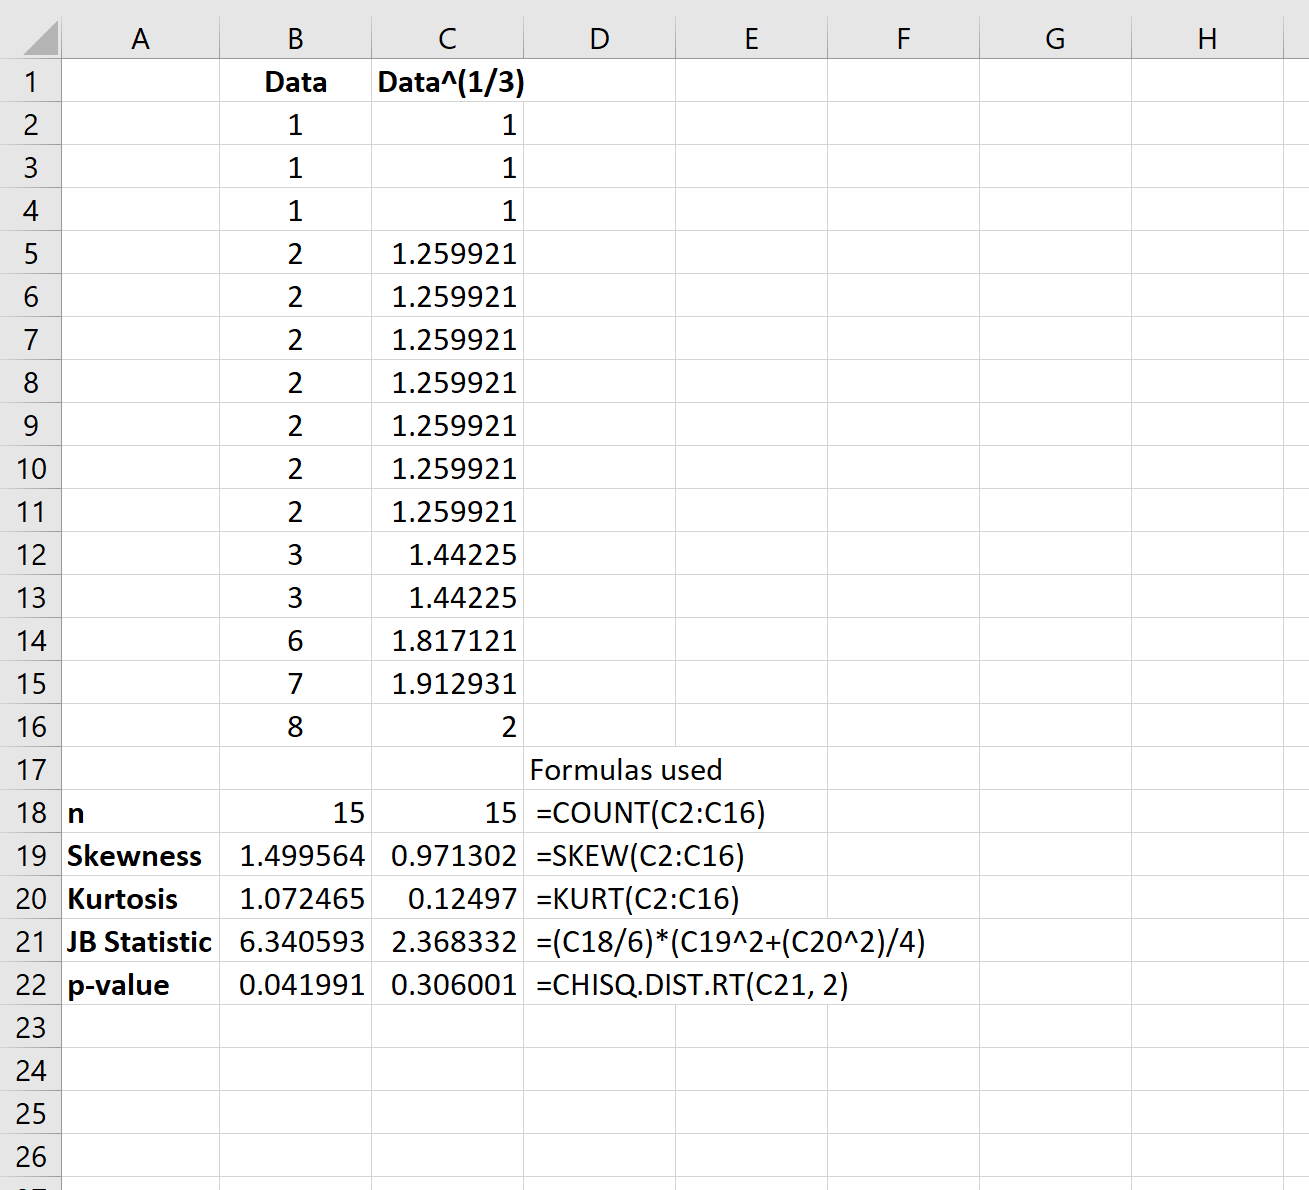 Cube root transformation in Excel